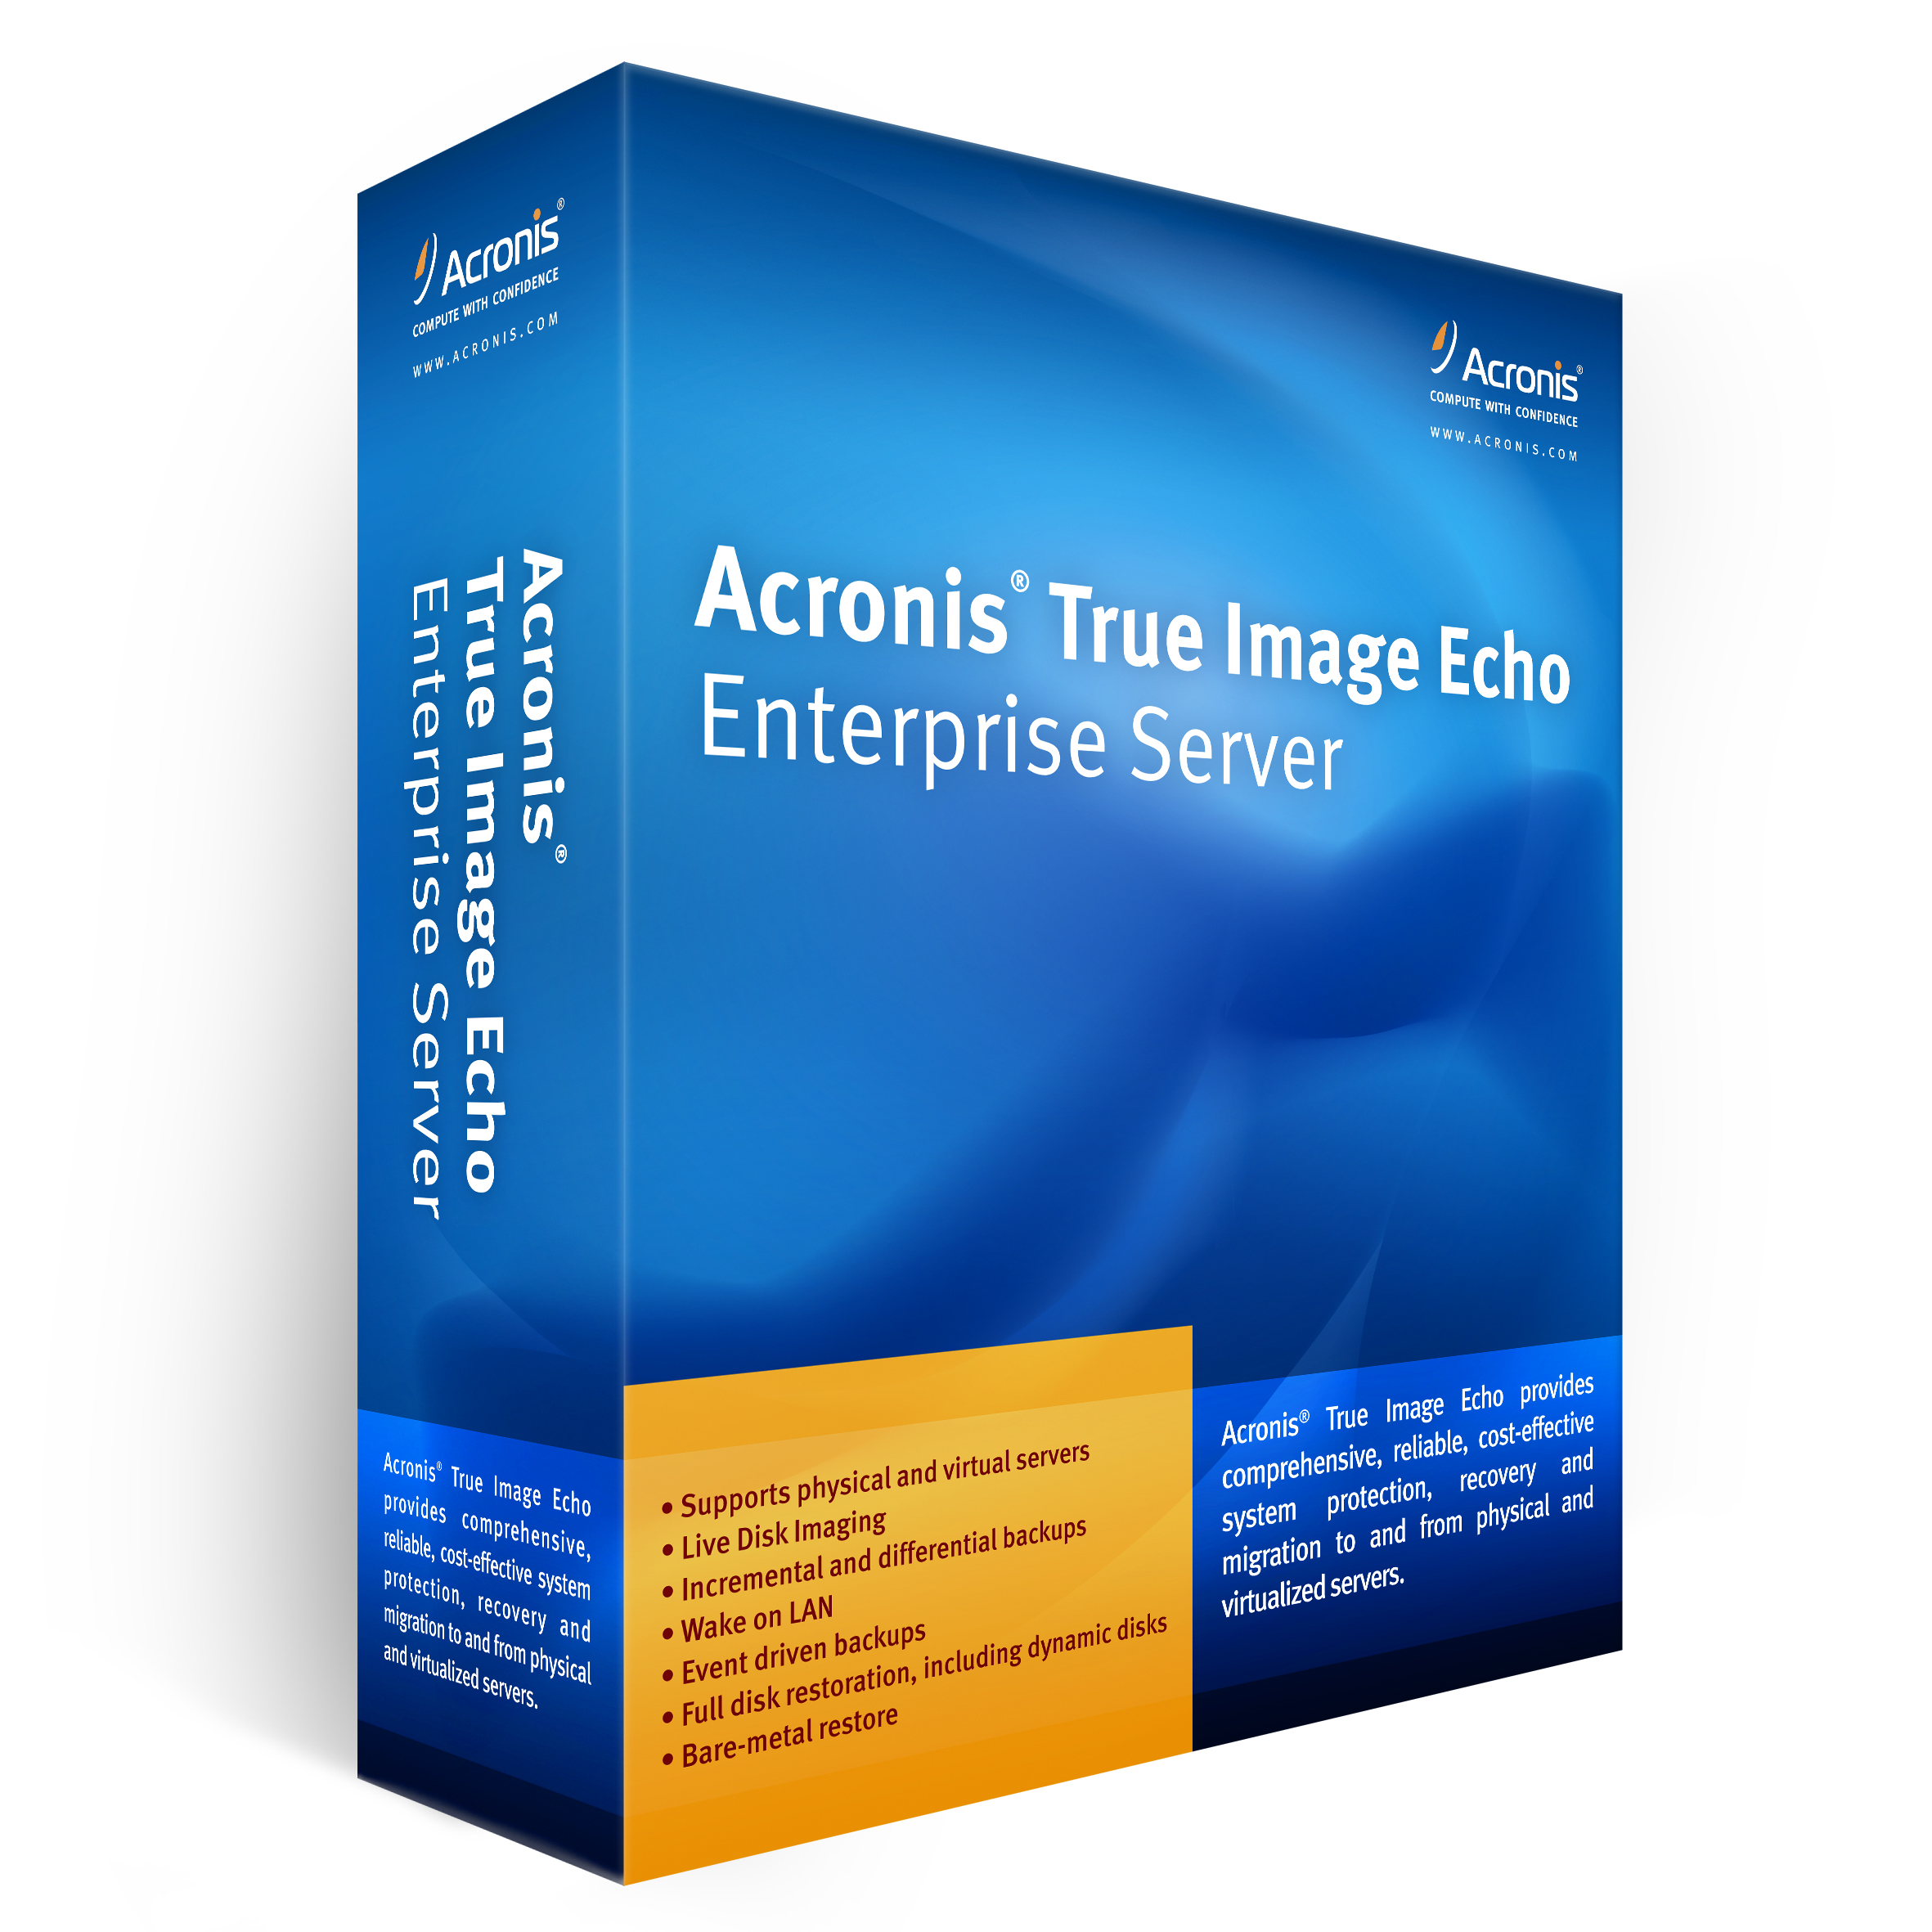 Acronis true image echo enterprise server bootable cd